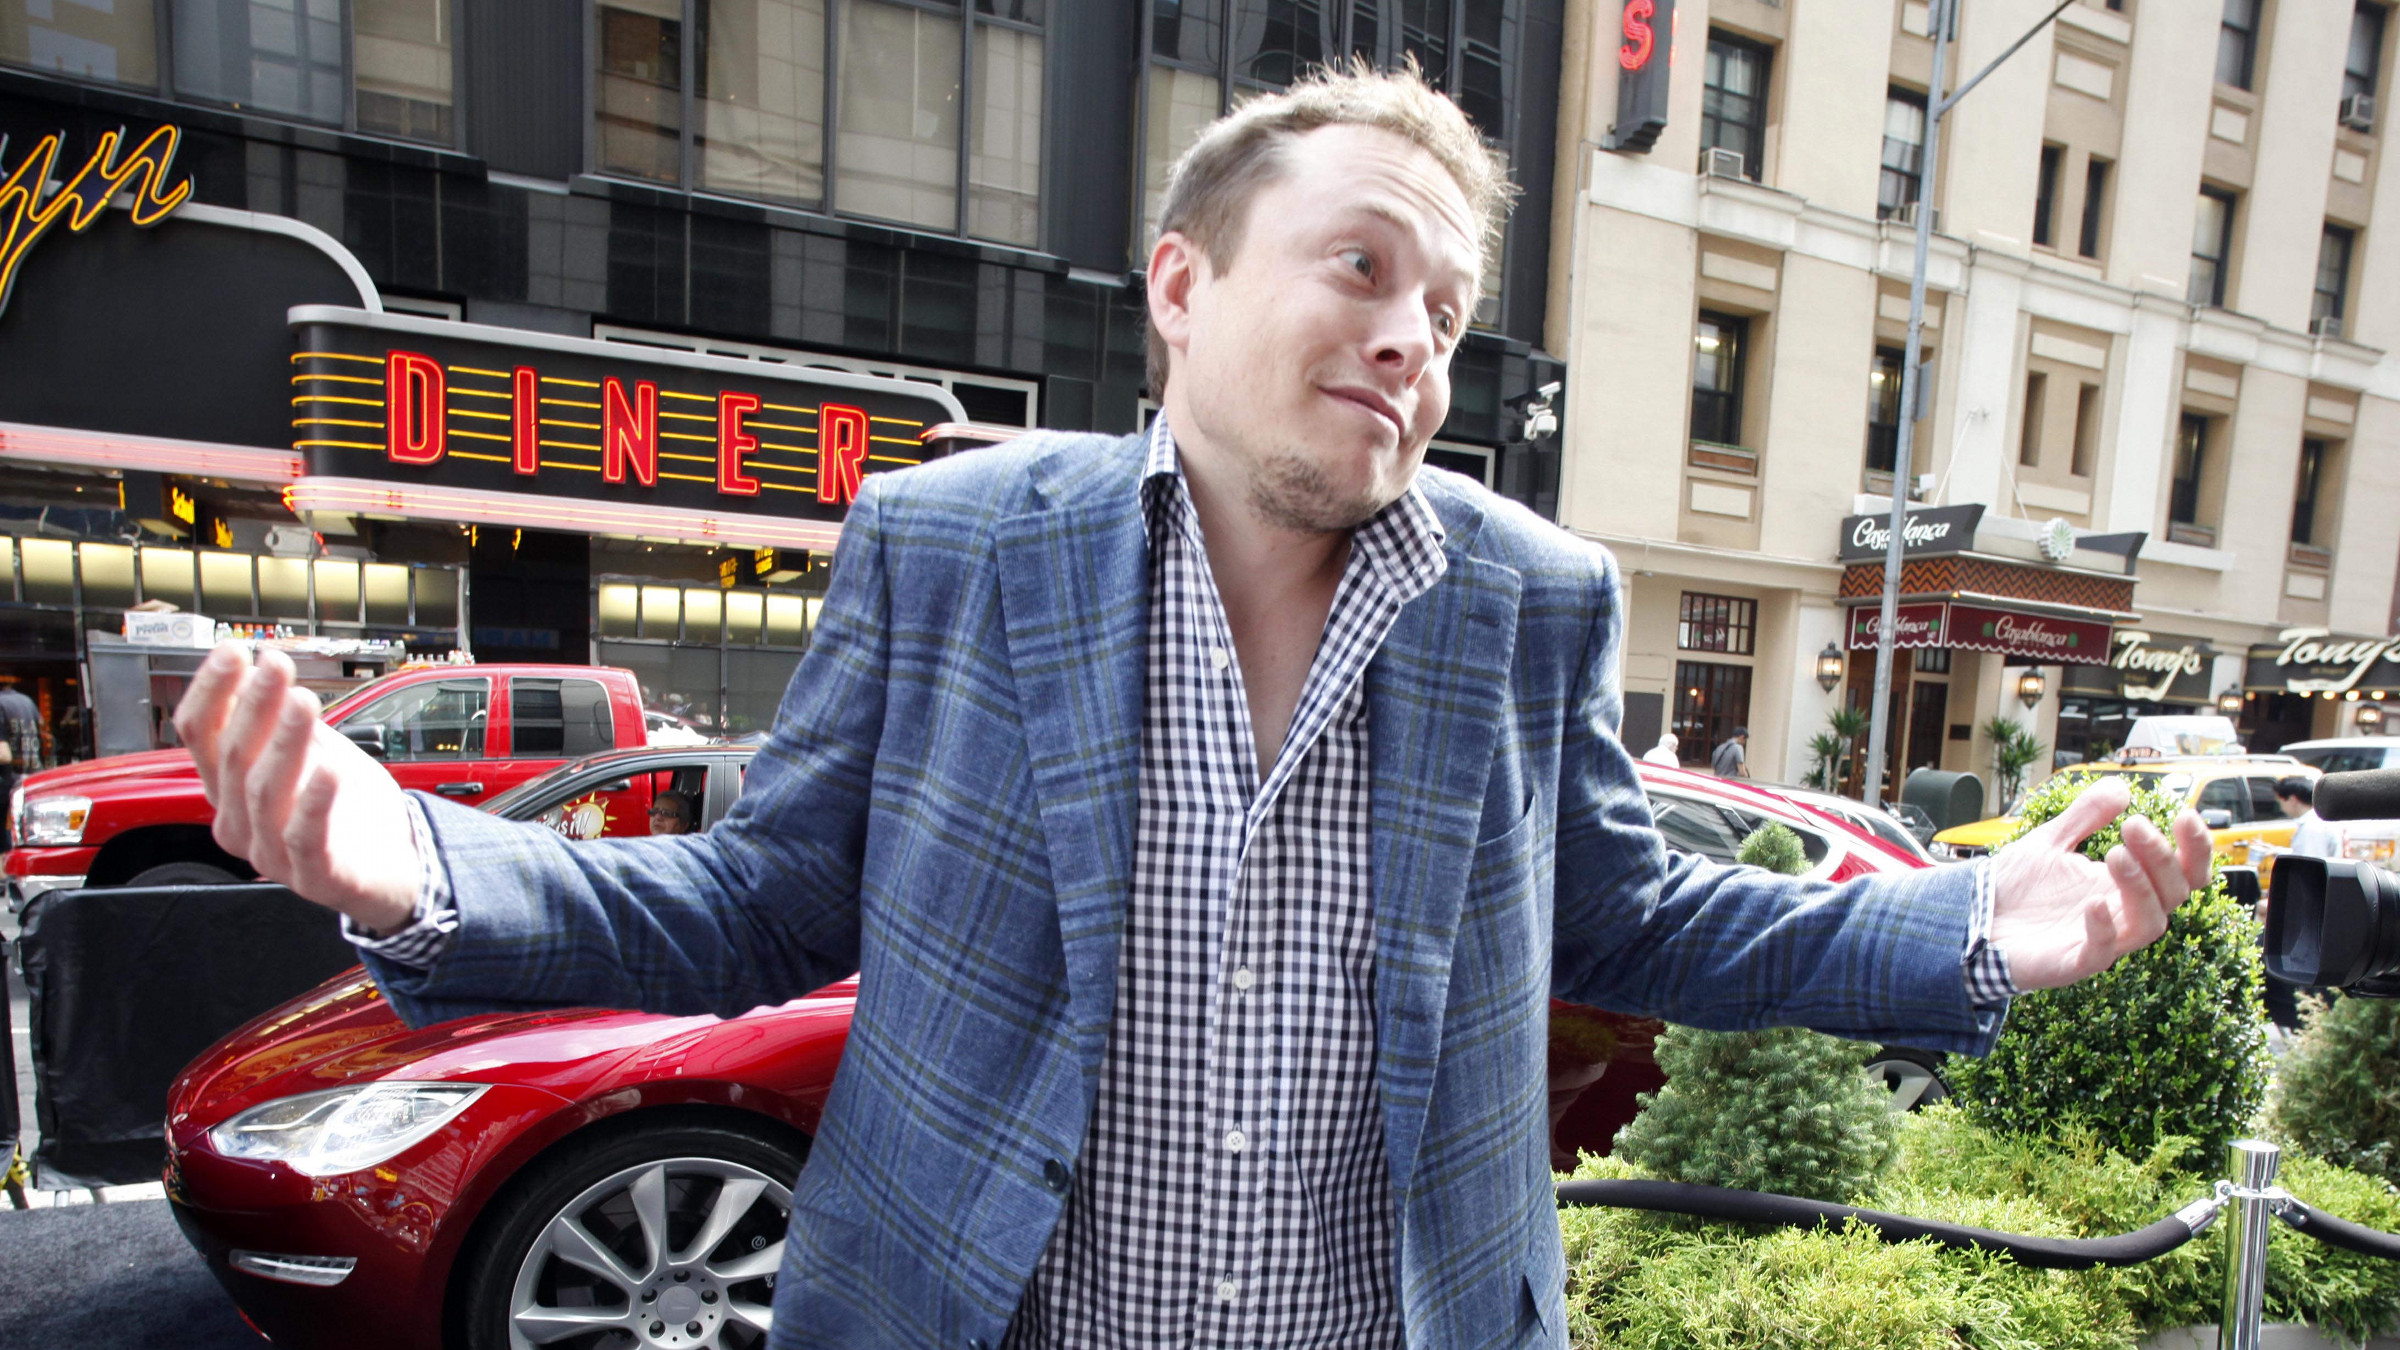 Musk Tesla The Elon Musk Is Right Tesla Could Be As Big As Apple Someday Quartz